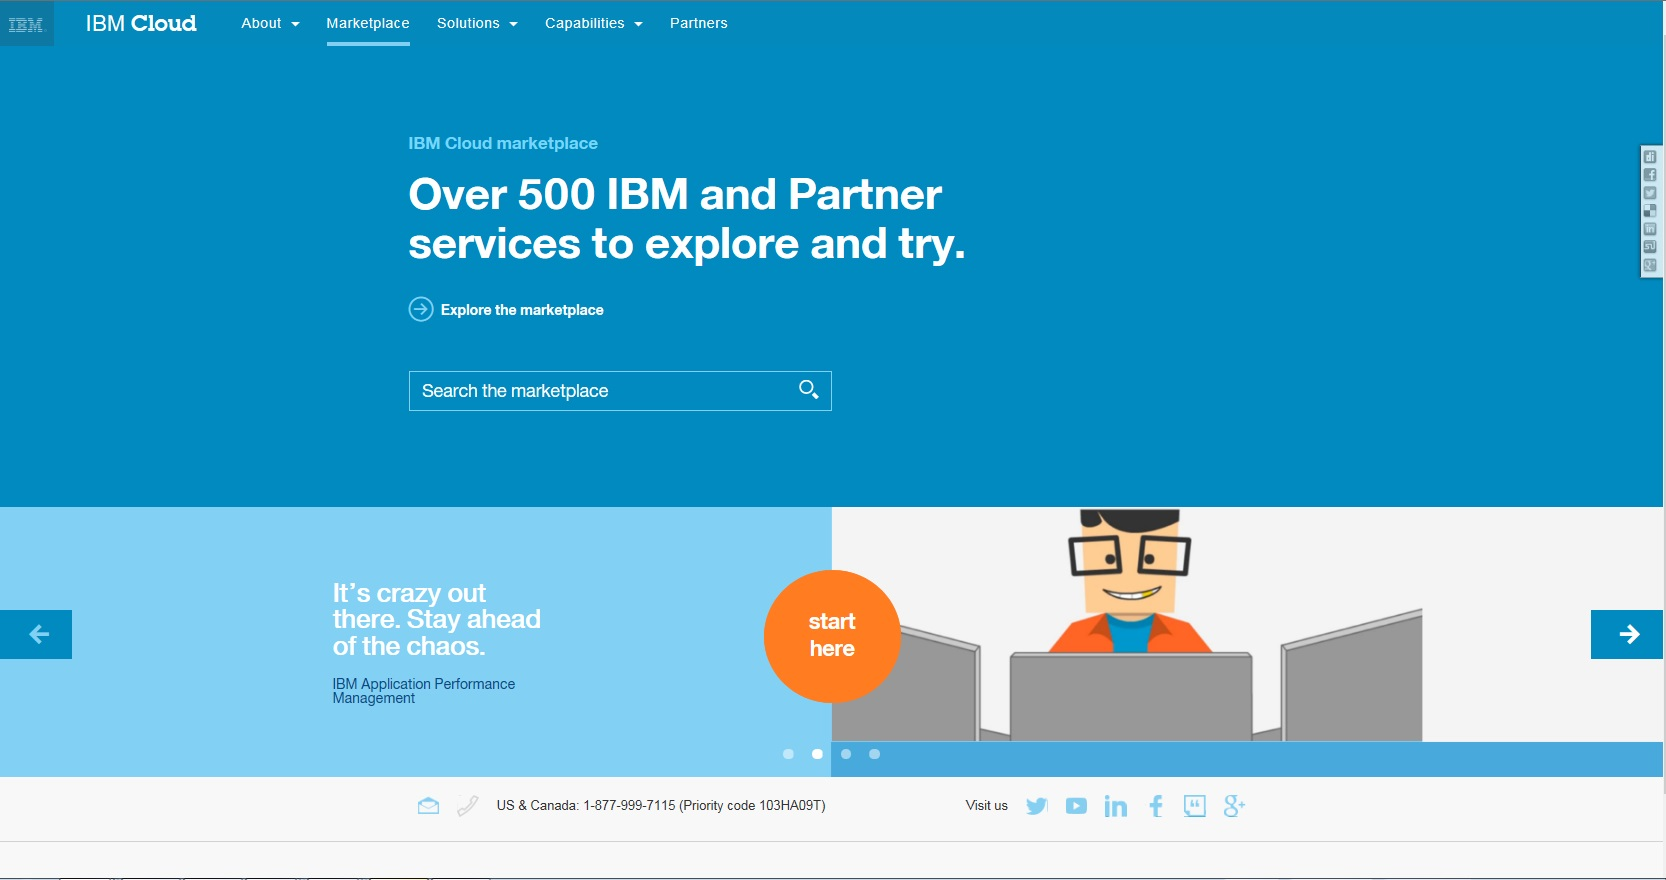 IBM partners with IO to delivery new cloud marketplace